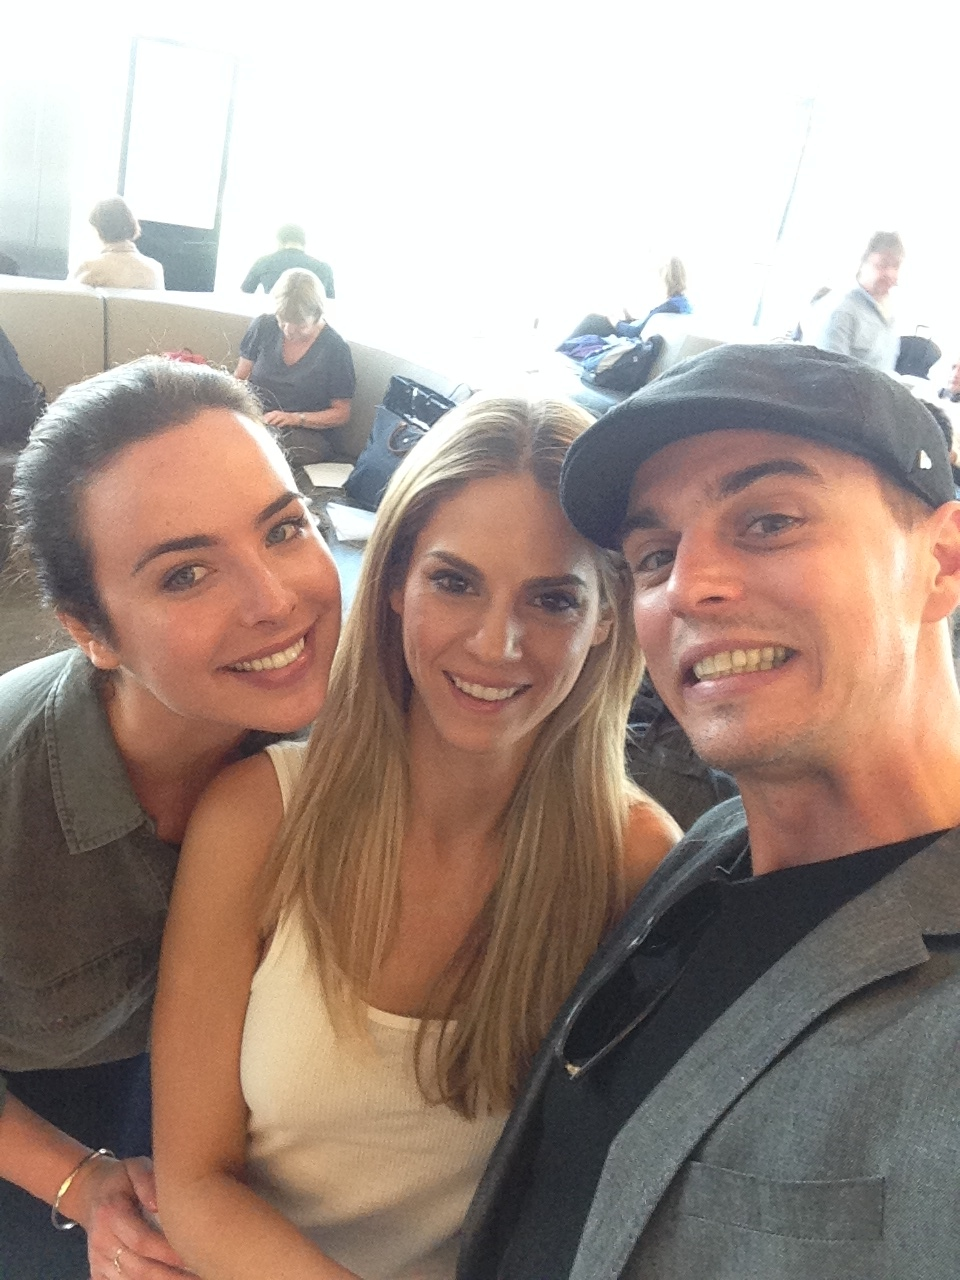 Me, Darin & The lovely Ashleigh Brewer in the lounge at London Heathrow waiting to board our flight to Nice.